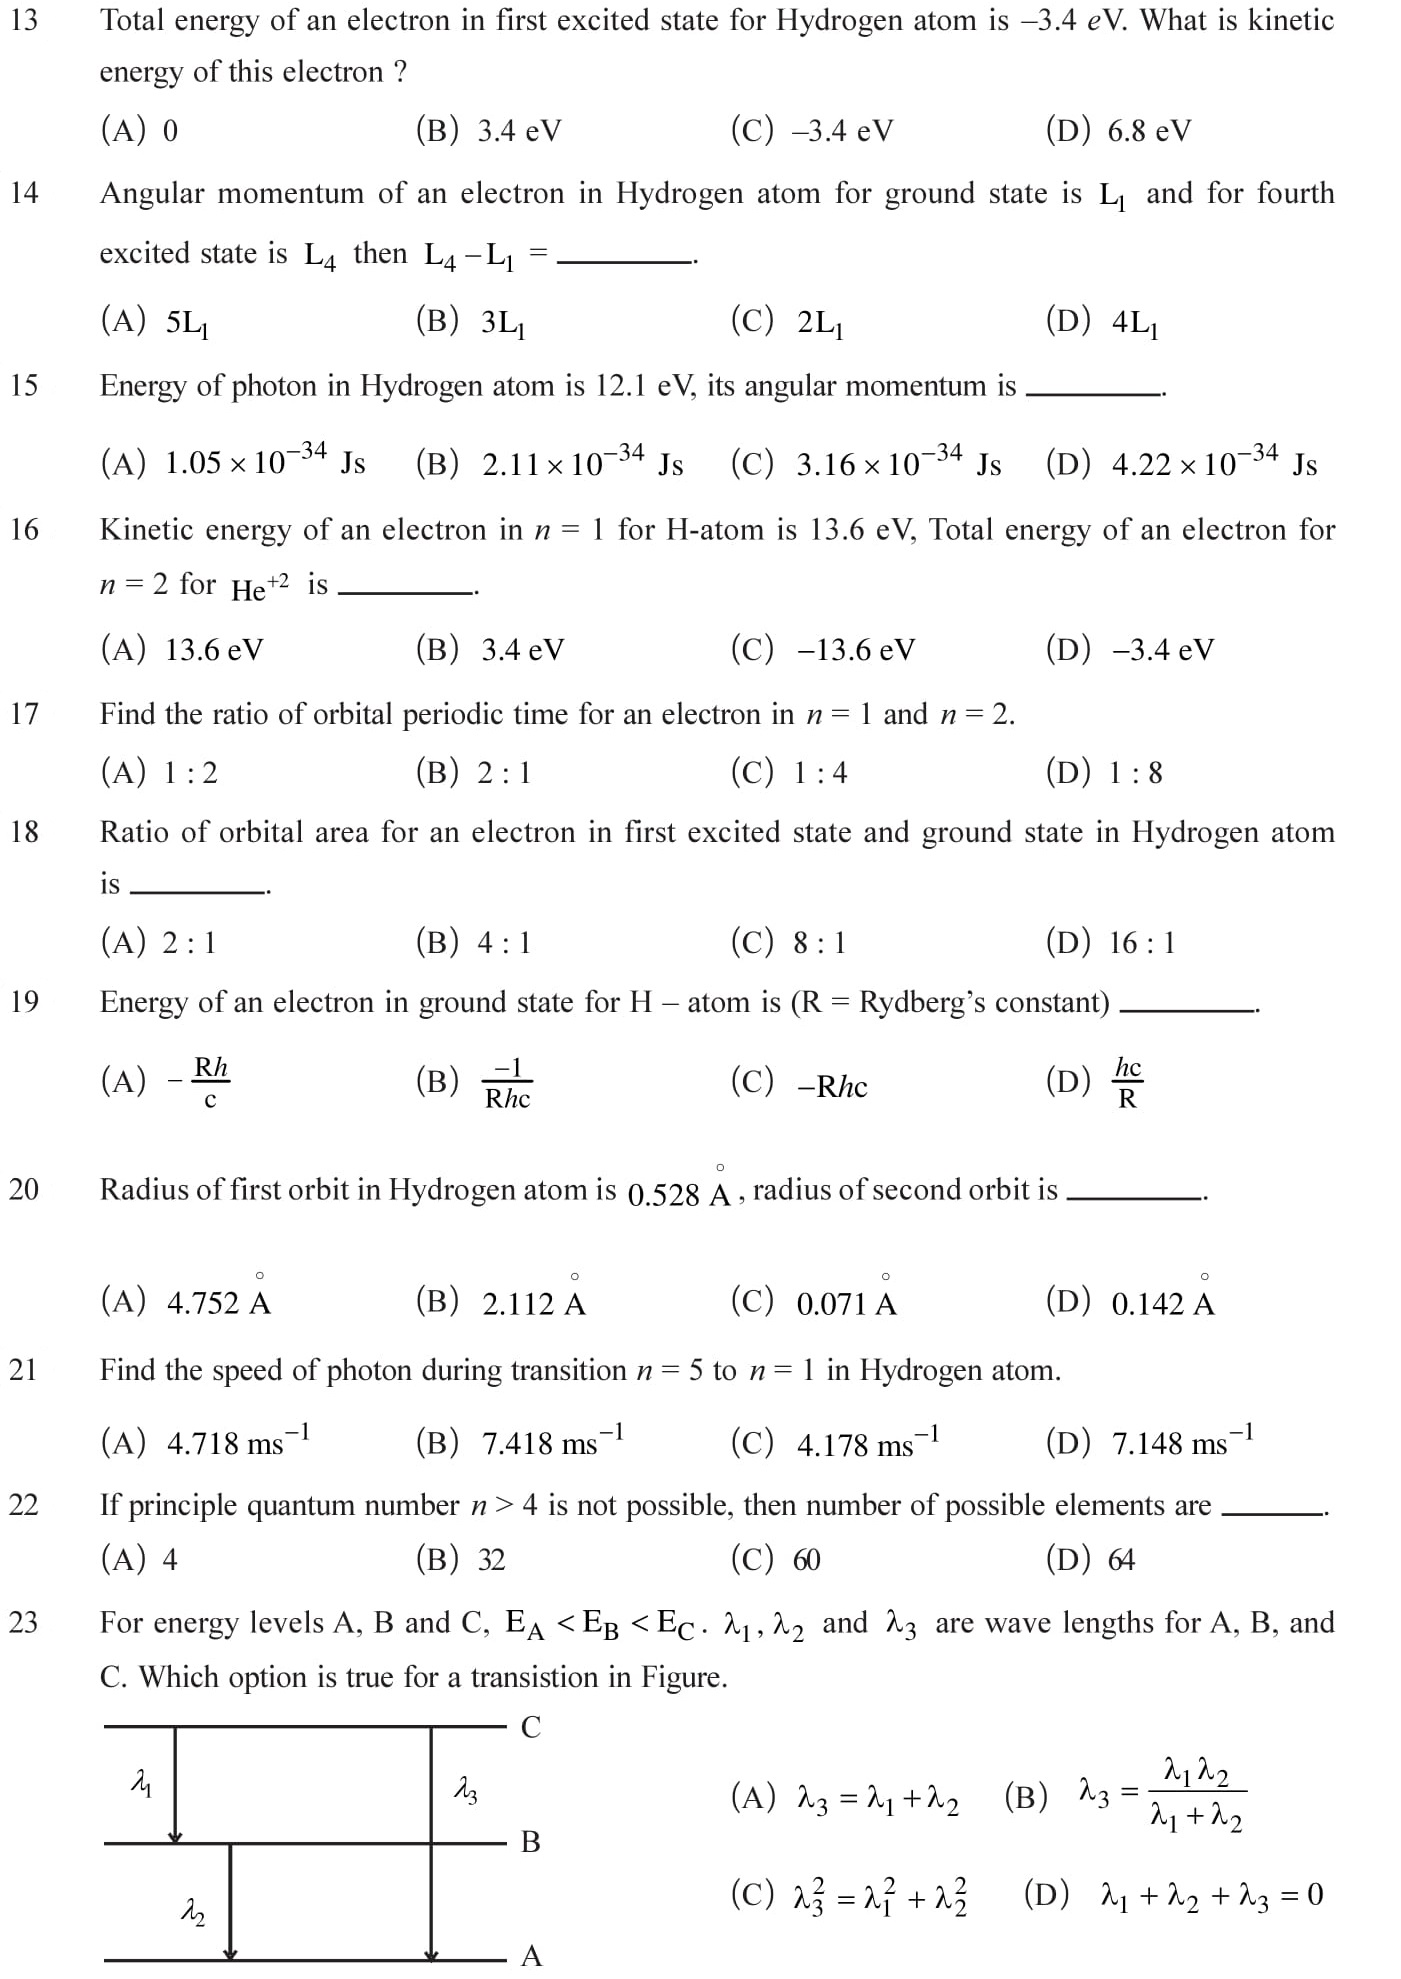 Numerical problems based on atoms for practice cbse exams